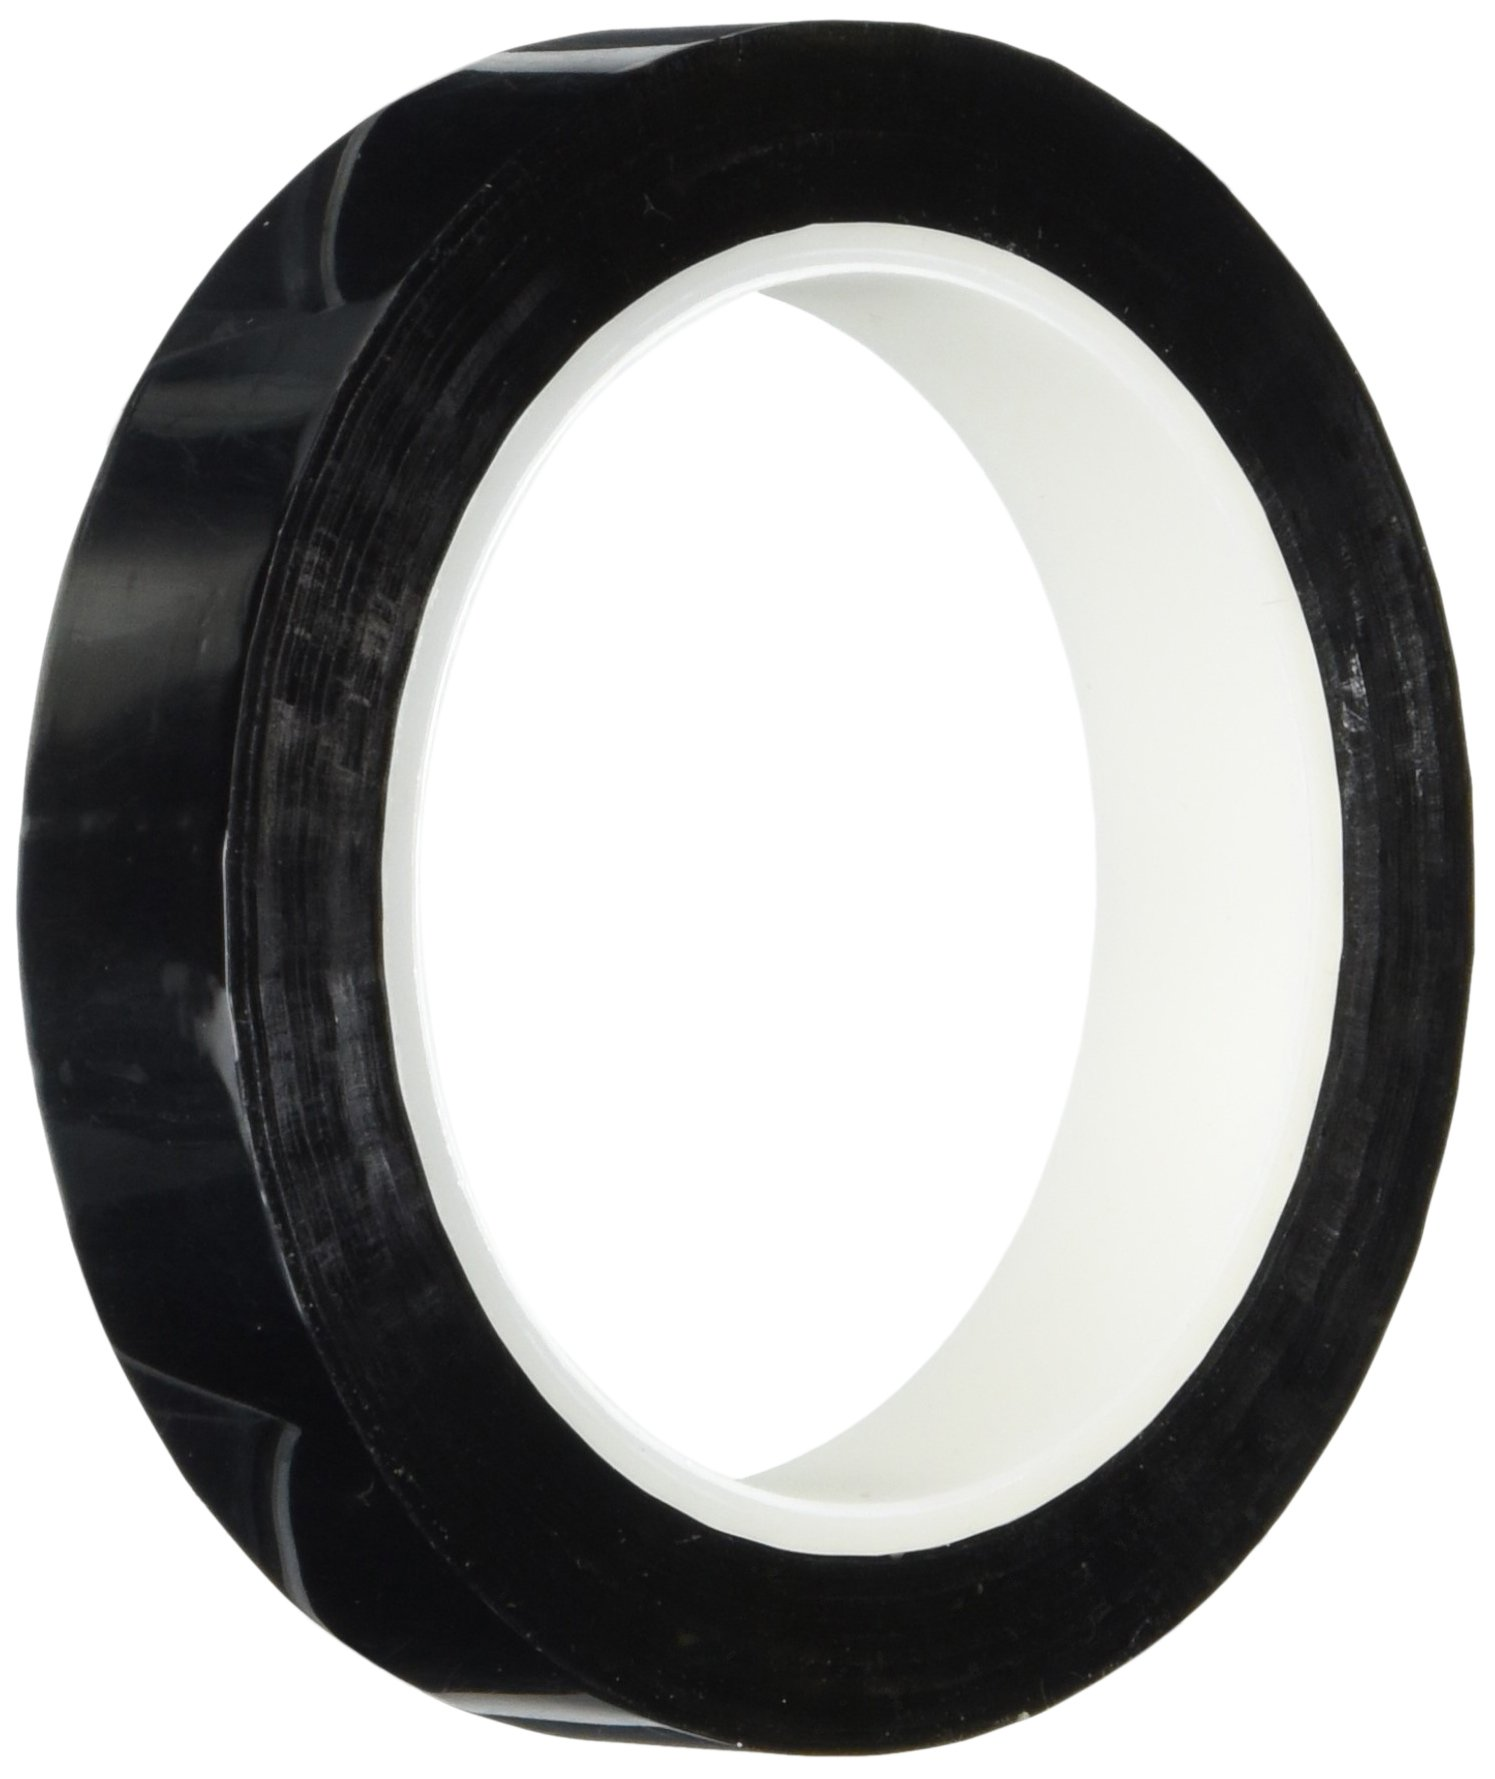 TapeCase Metalized Polyester Film Tape 3/4'' x 72yds - Black (1 Roll)